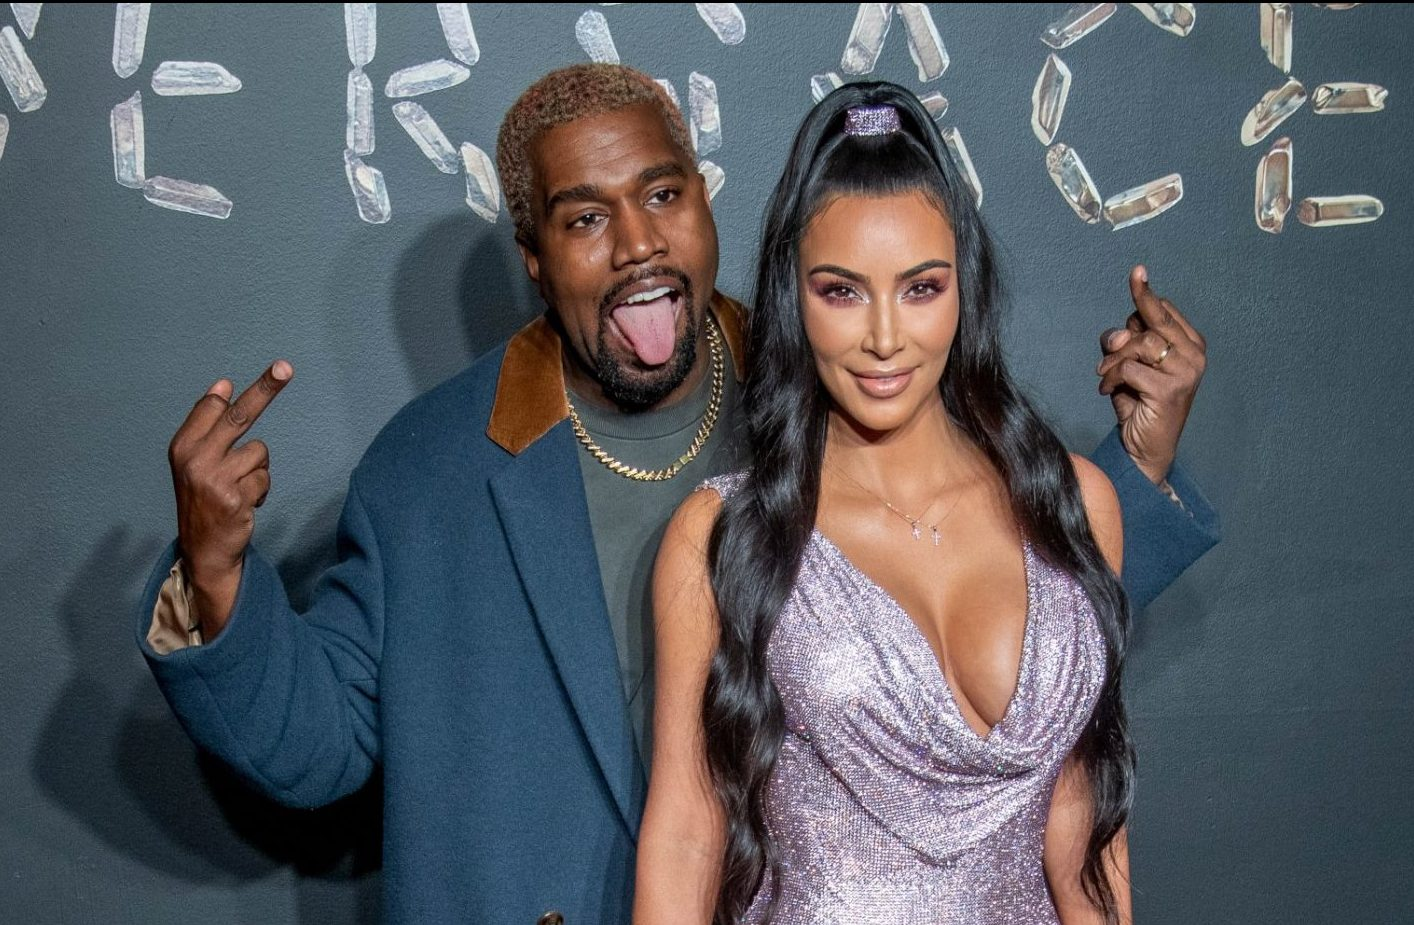 Kim Kardashian defending Kanye's slavery comments was never meant to air on KUTWK